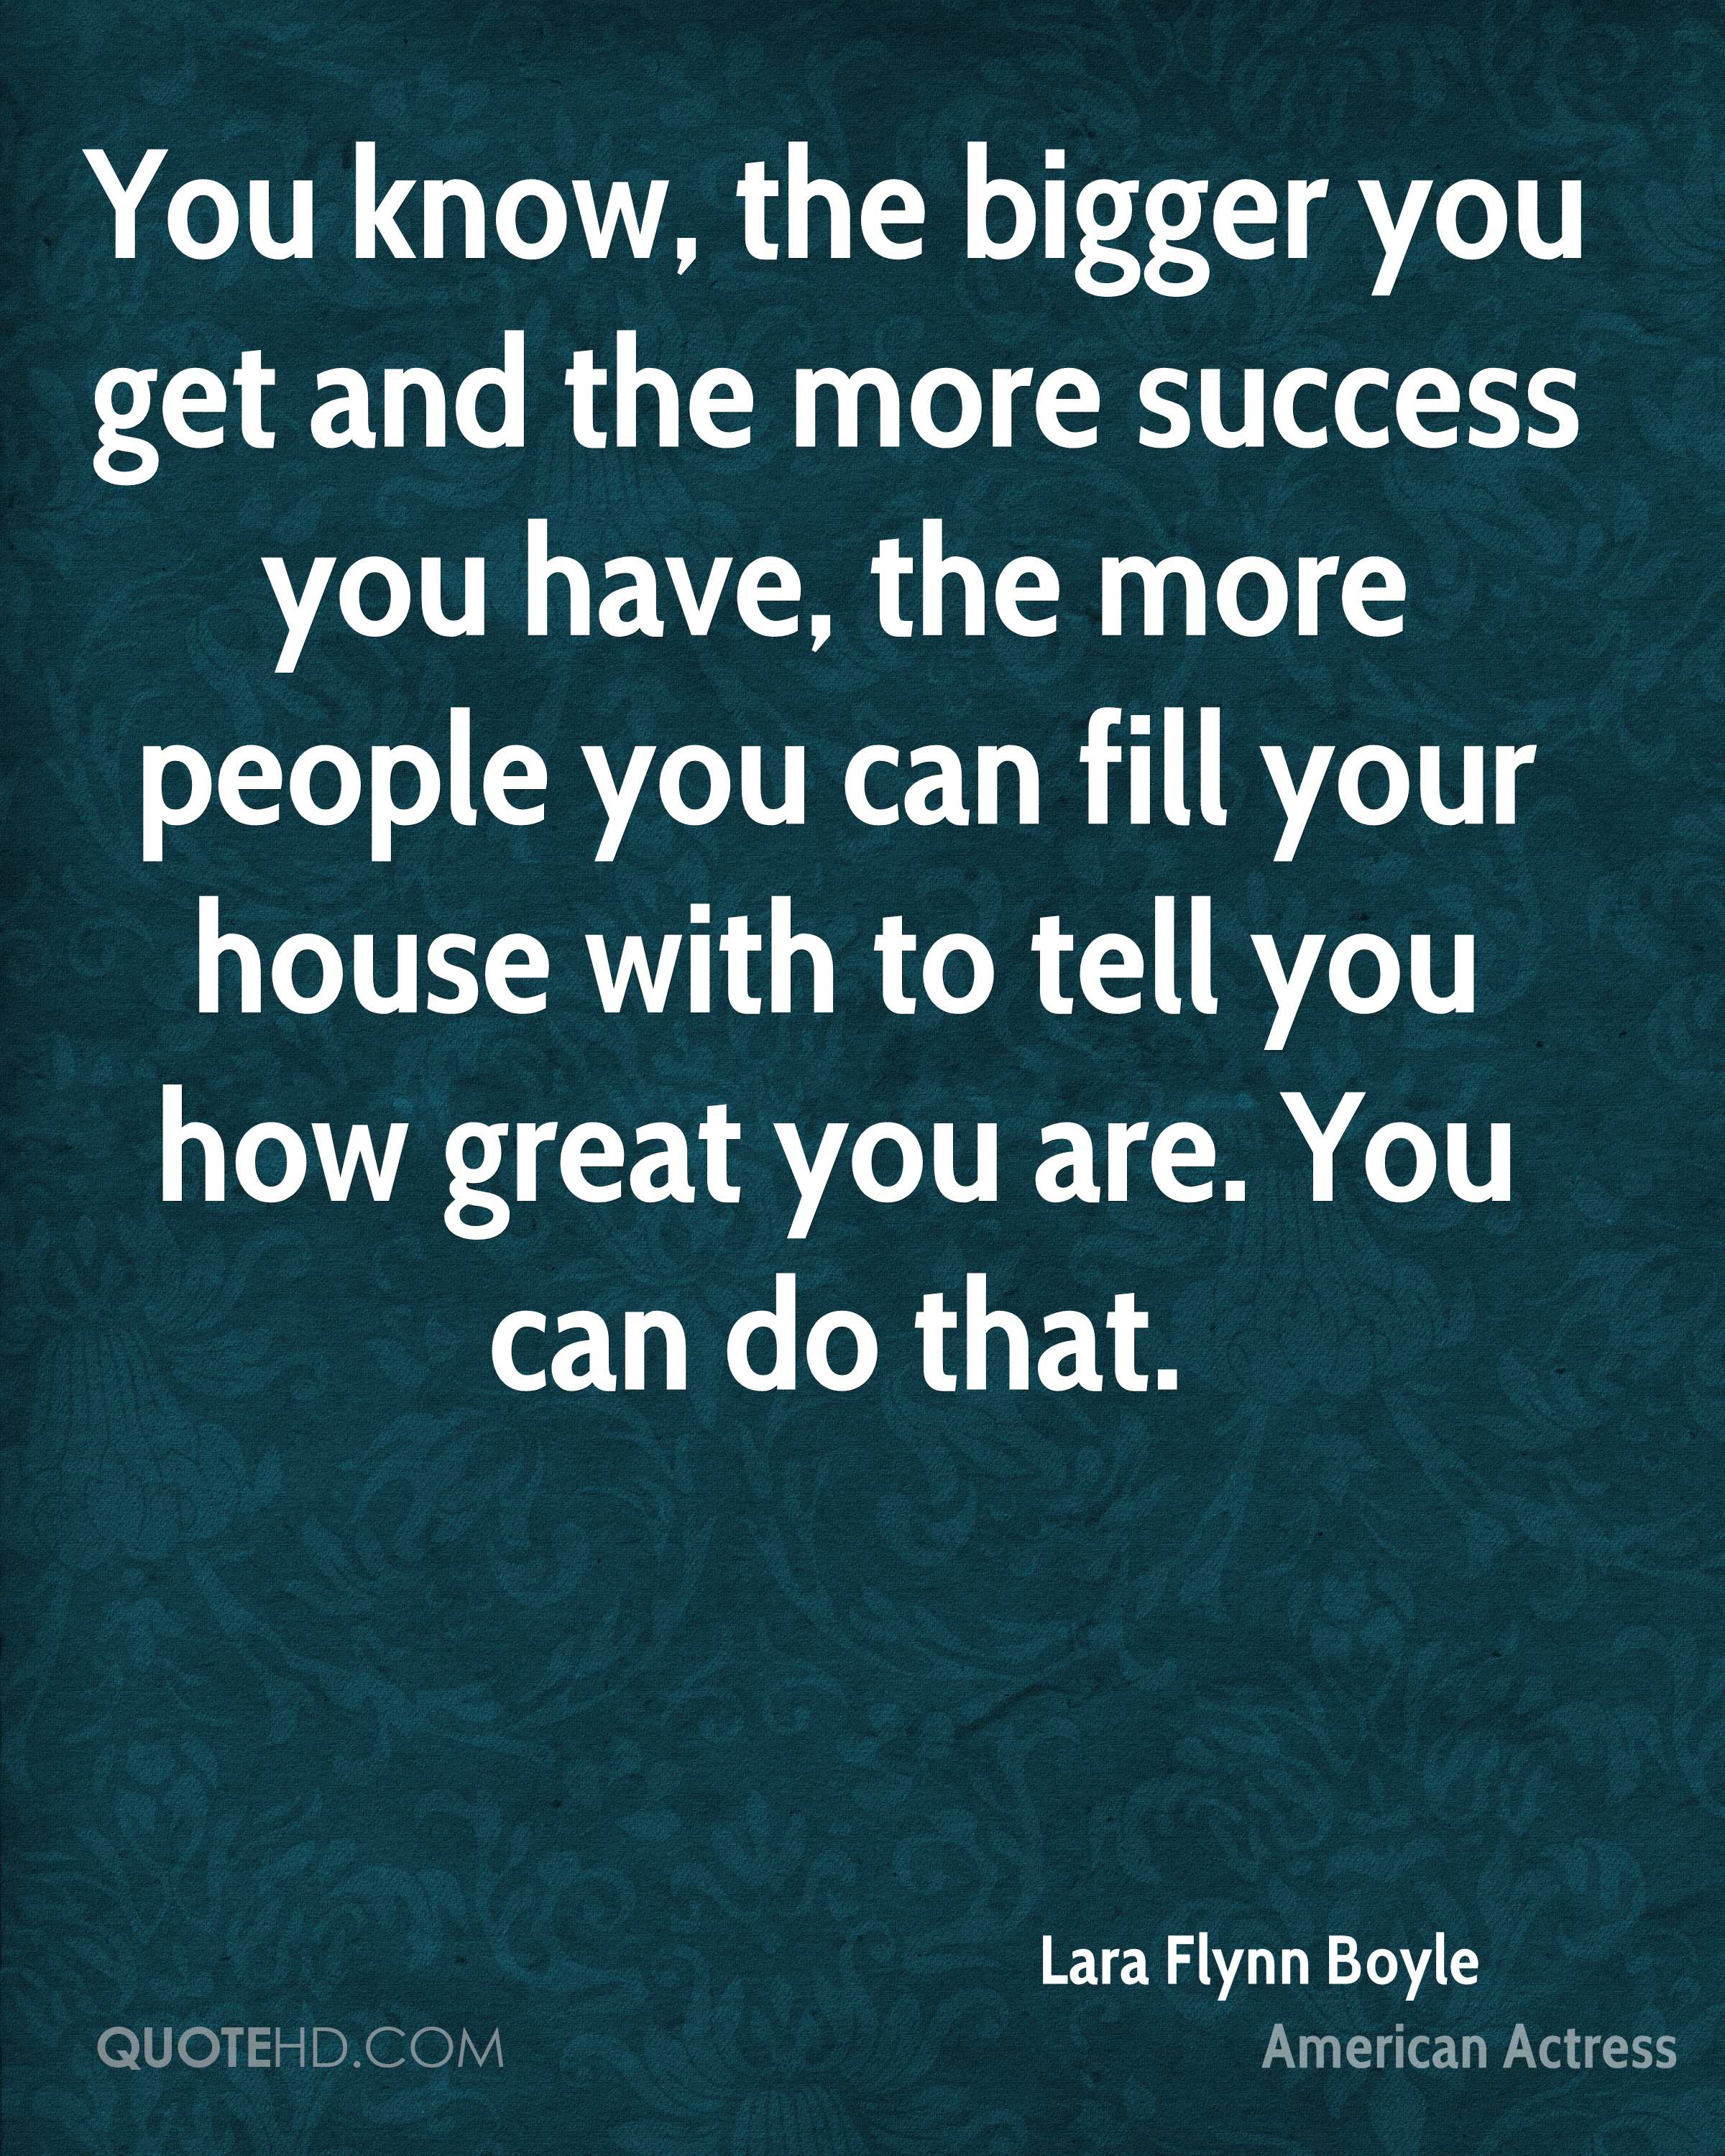 You know, the bigger you get and the more success you have, the more people you can fill your house with to tell you how great you are. You can do that.